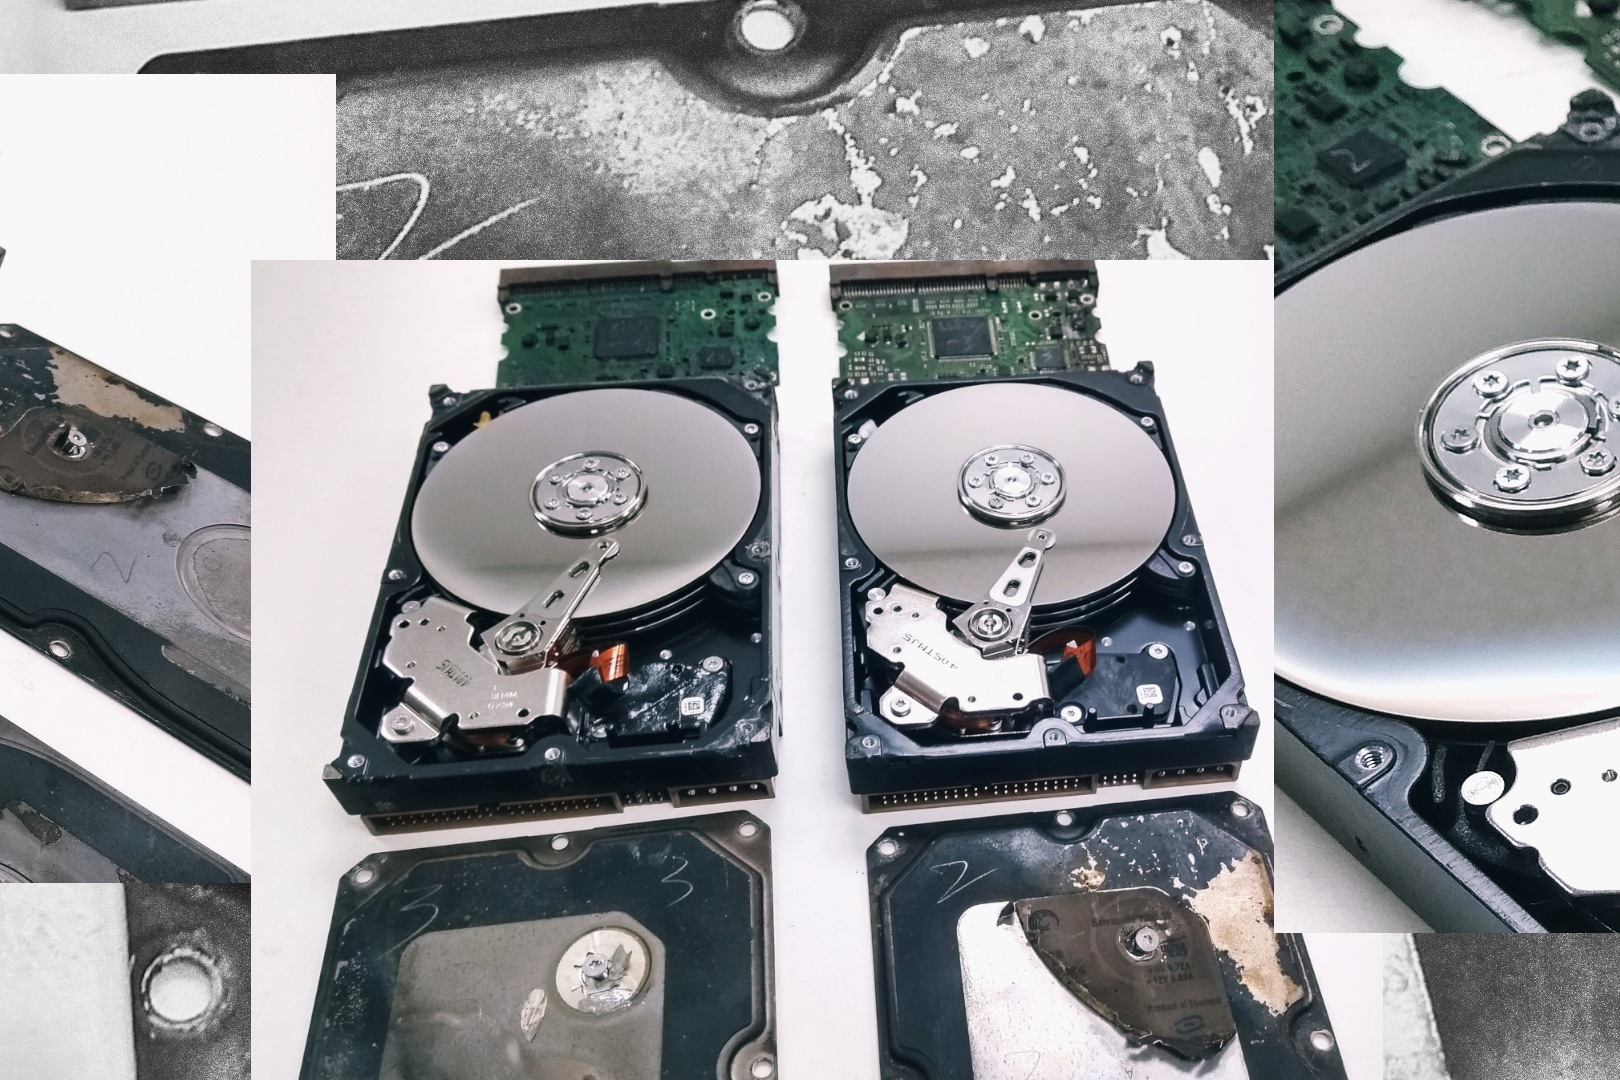 CBL Pictures: Easy to See Not-So Hot Fate for Not-So Burnt HardDrives